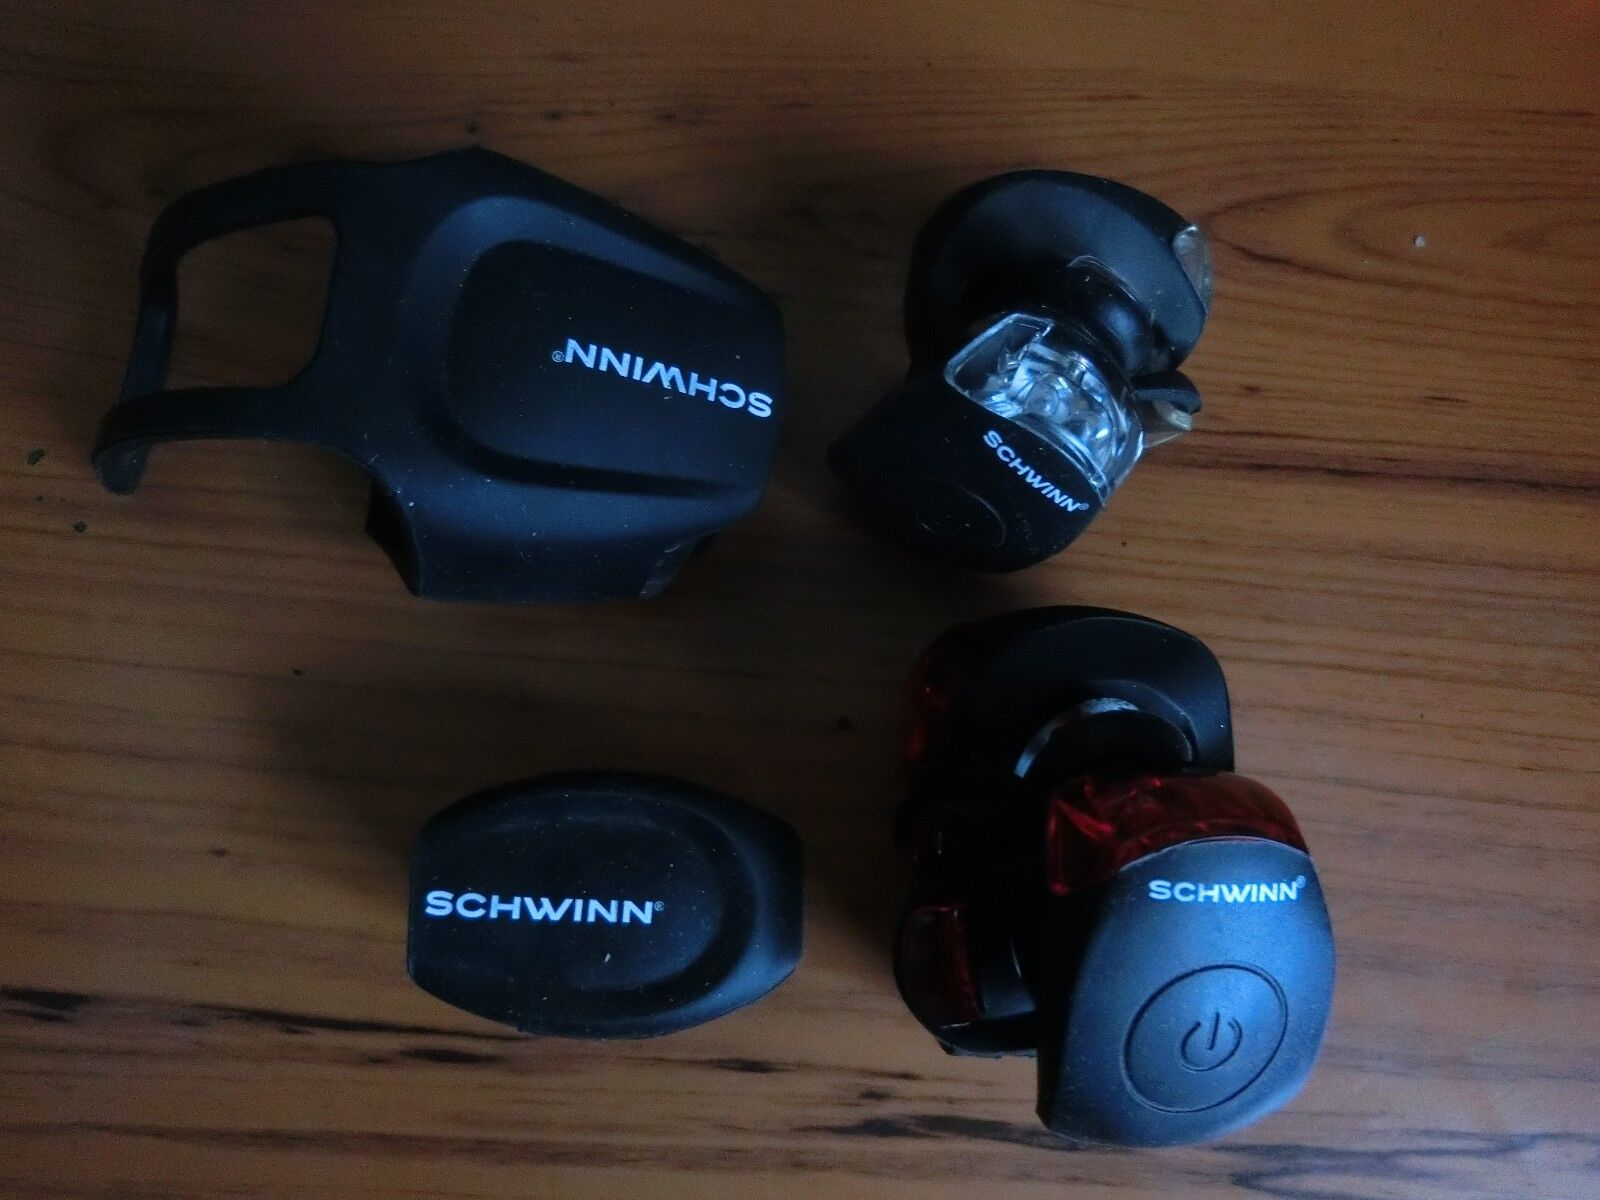 7 Schwinn Bicycle Lights Bundle